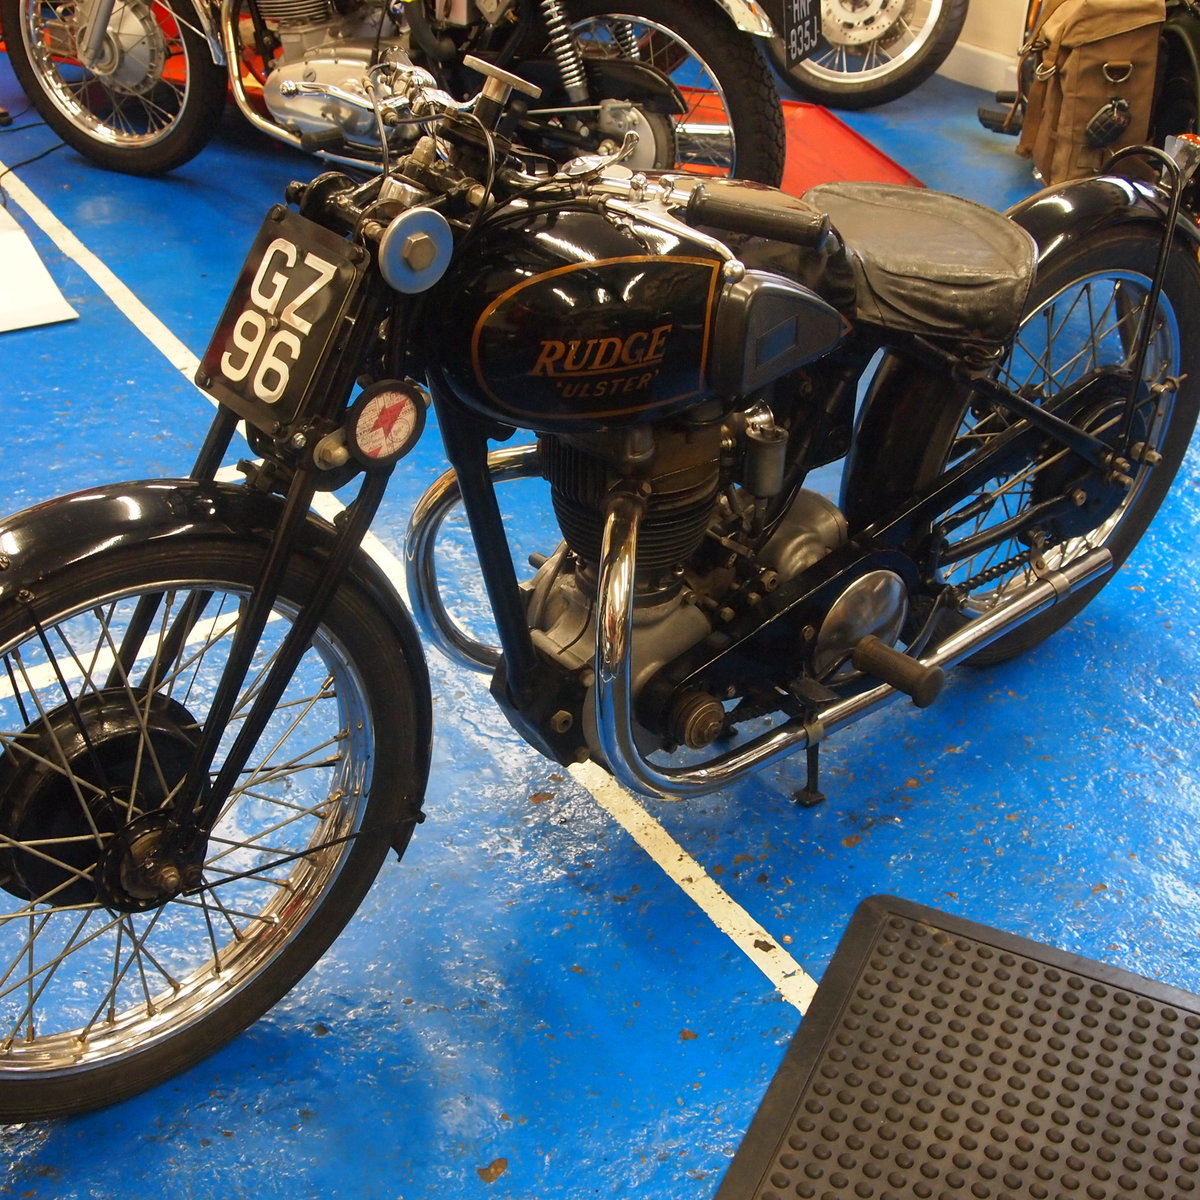 1938 Rudge Ulster 500 With Great Reg Number GZ 96. SOLD (picture 4 of 6)